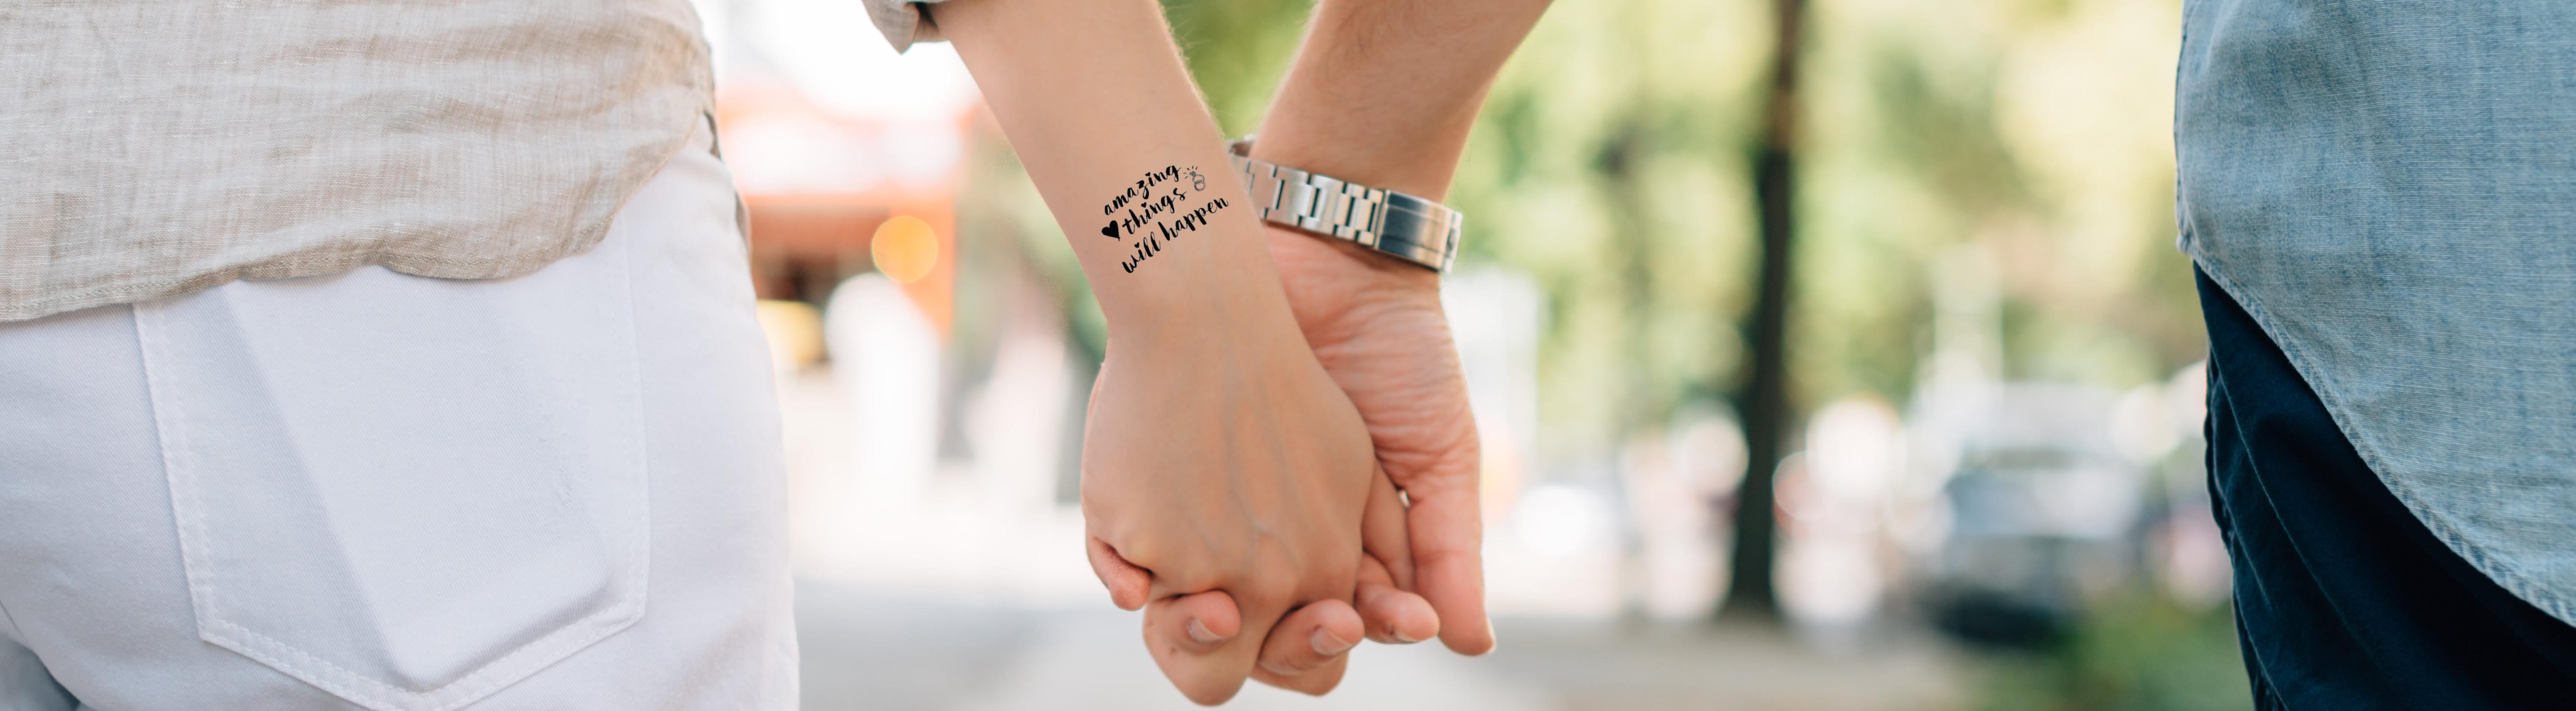 temporaere-tattoos-jga